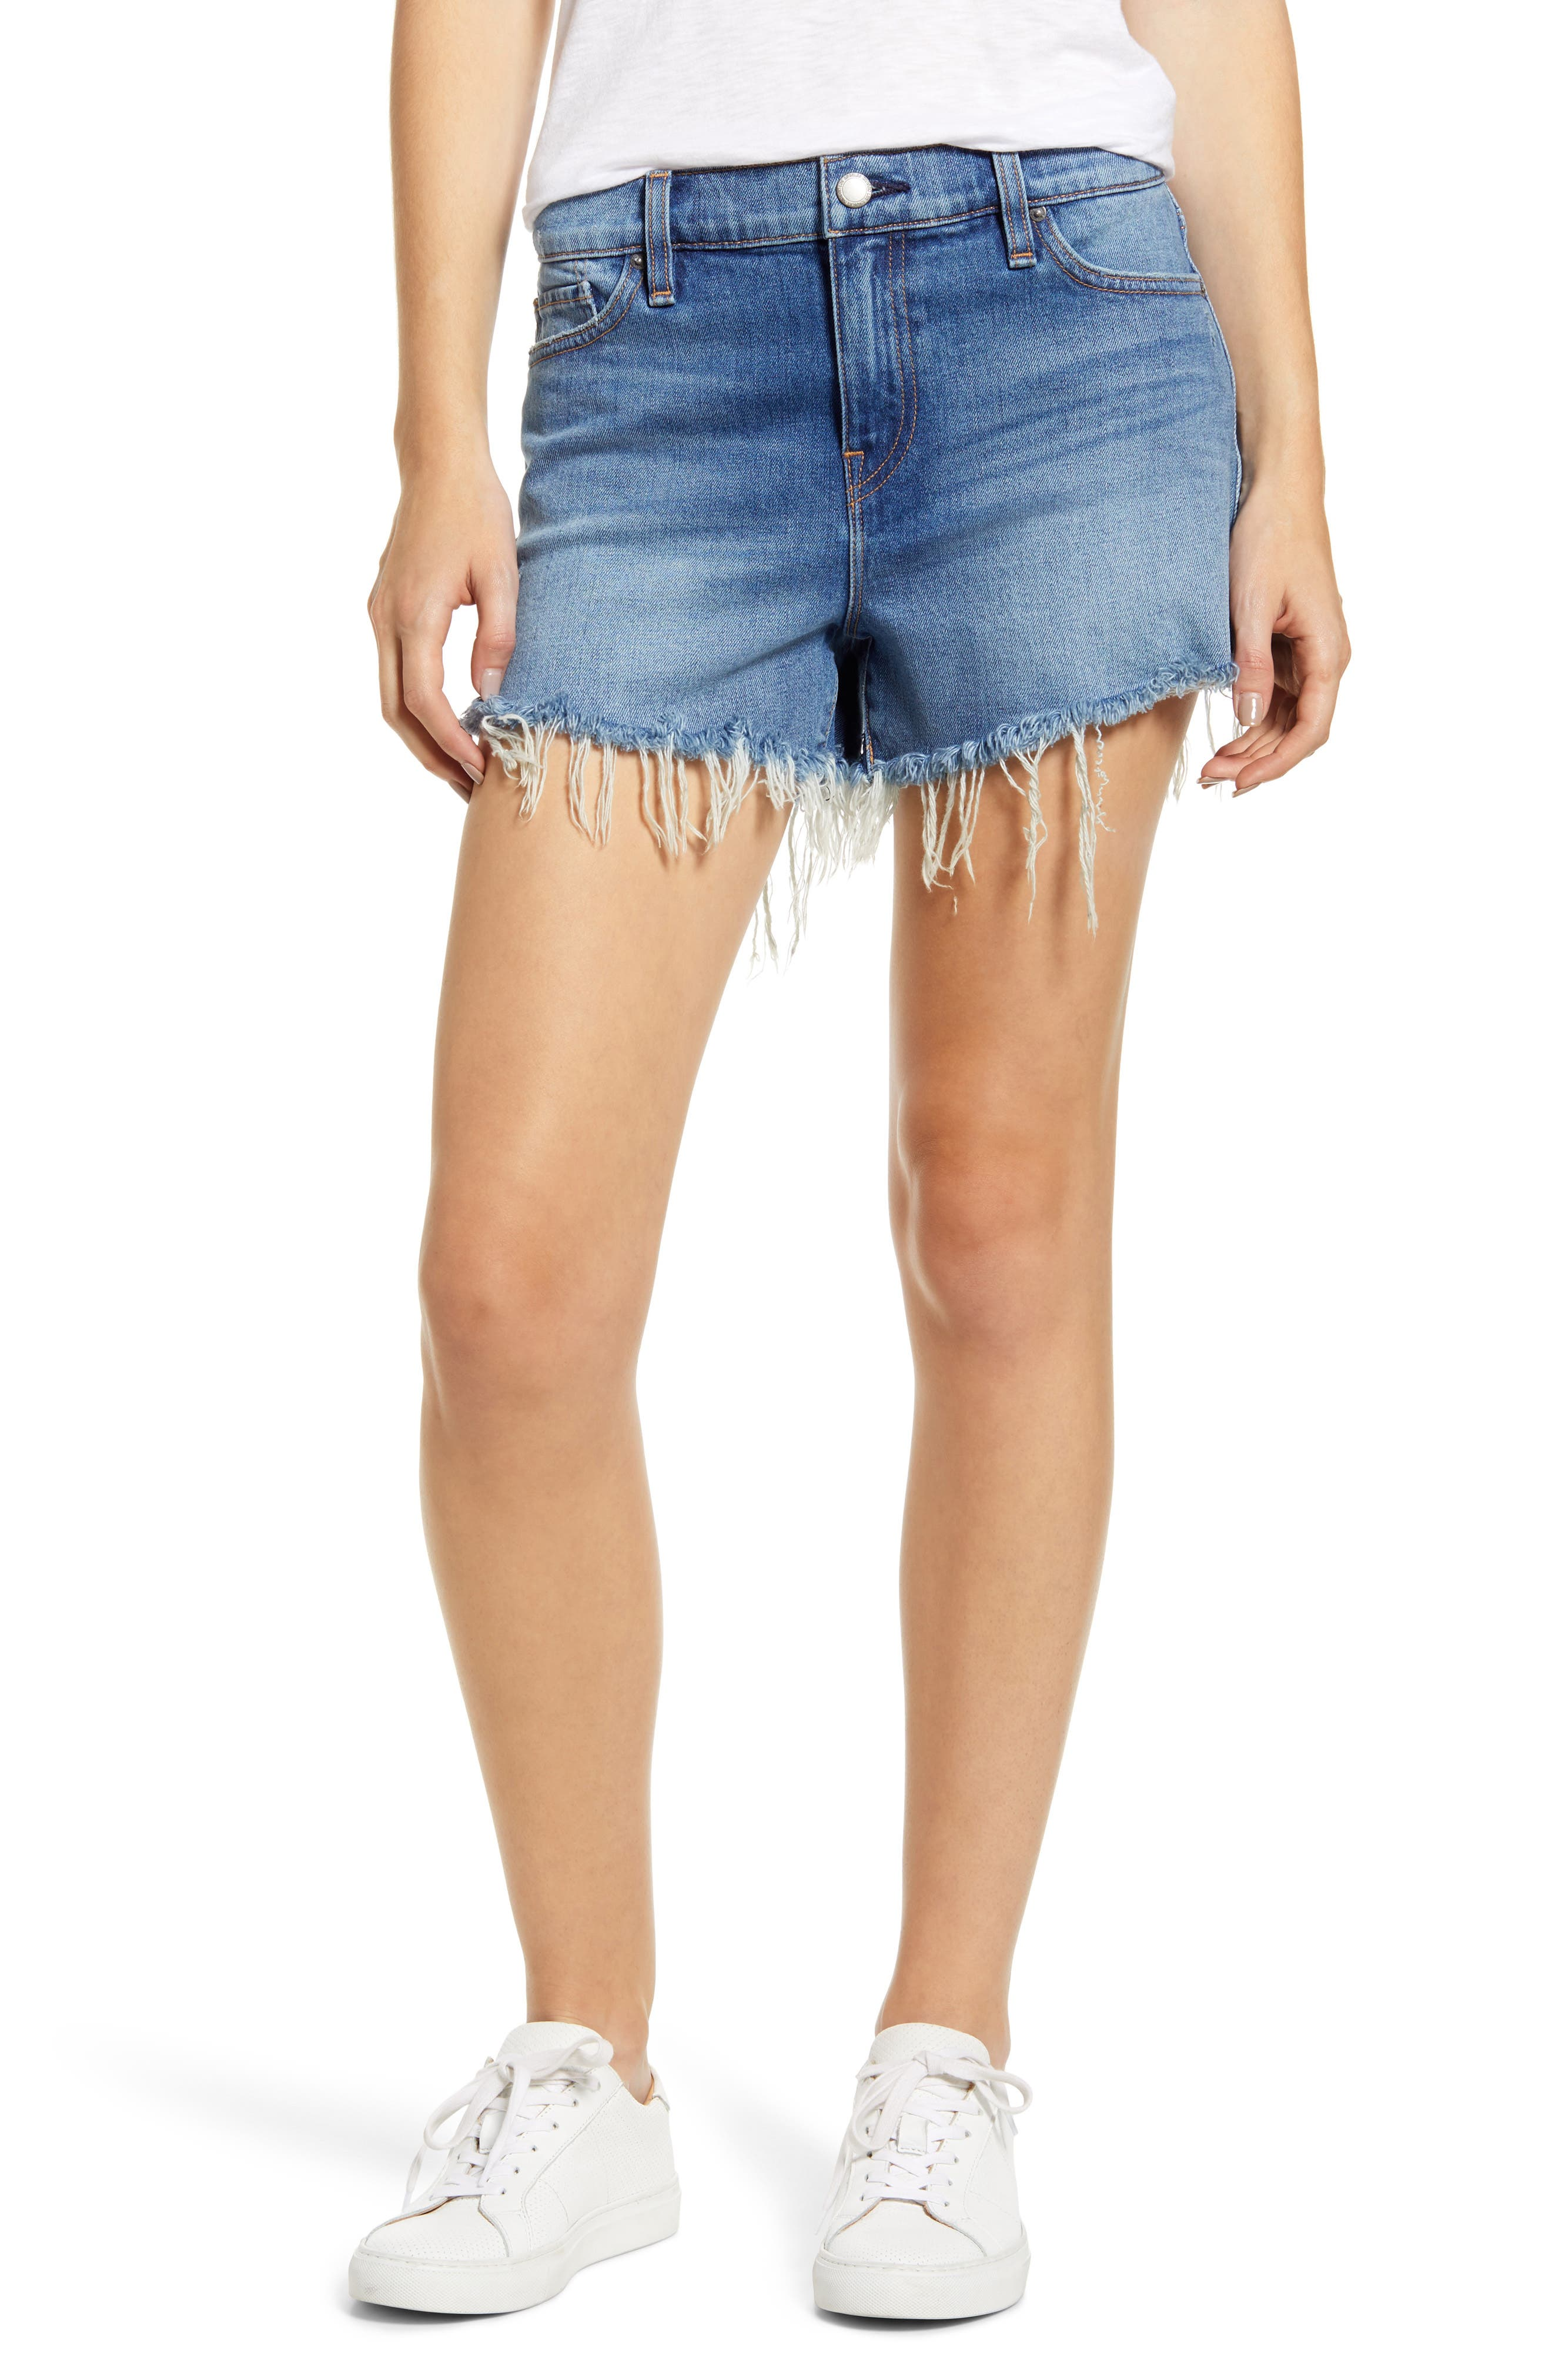 Lived-in and ready to love, these wear-everywhere cutoffs are ready for off-duty days in the sun. Style Name: Hudson Jeans Gemma Cutoff Denim Shorts. Style Number: 5776455 3. Available in stores.